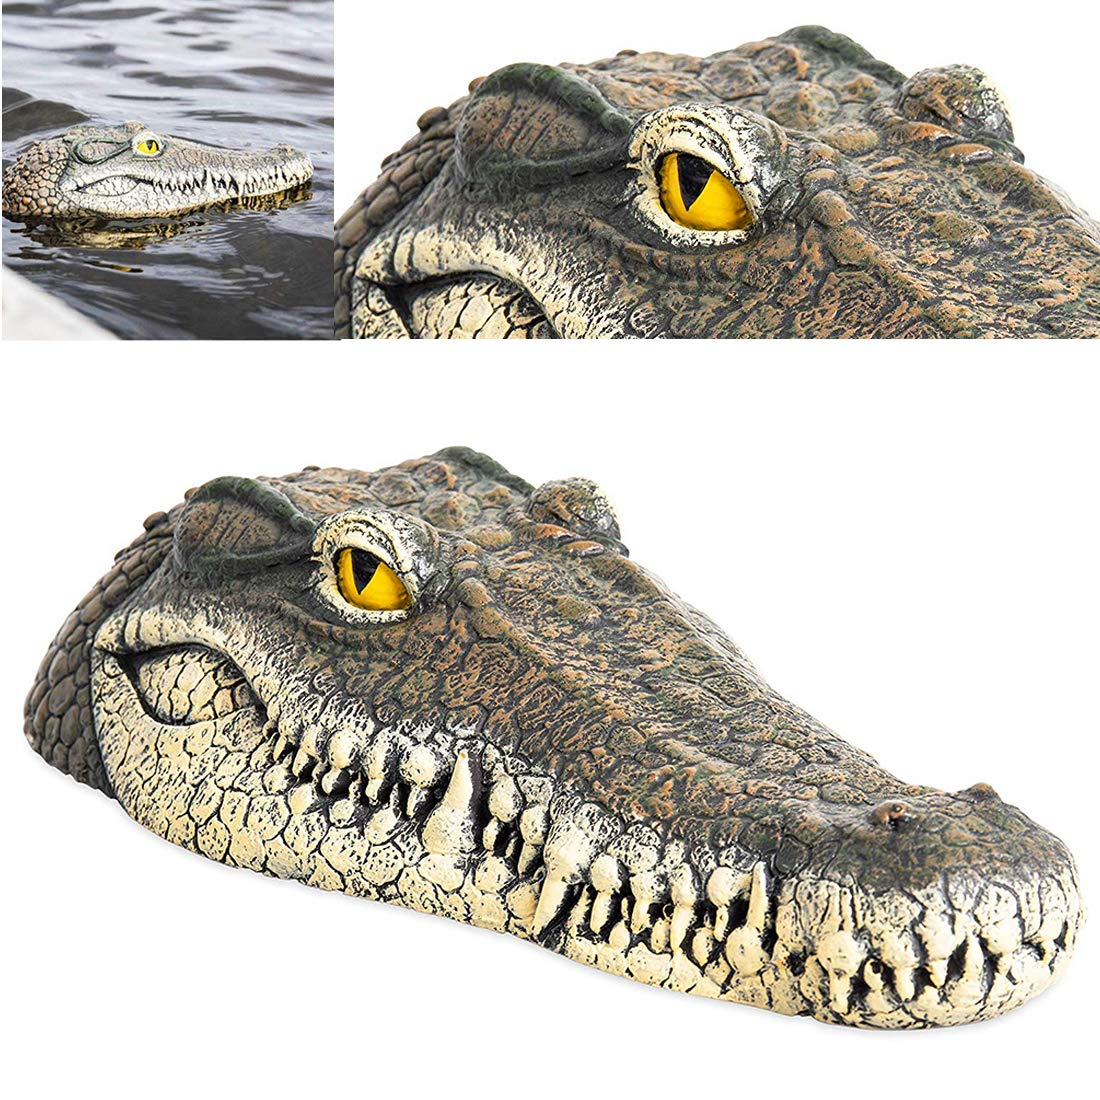 SPROTW Floating Alligator Head Decoy, Deter Animals Solution Float Gator for Pool Pond Garden Defender Decoration, 13 x 5.8 x 2.8 Inches Also a Trick Toy